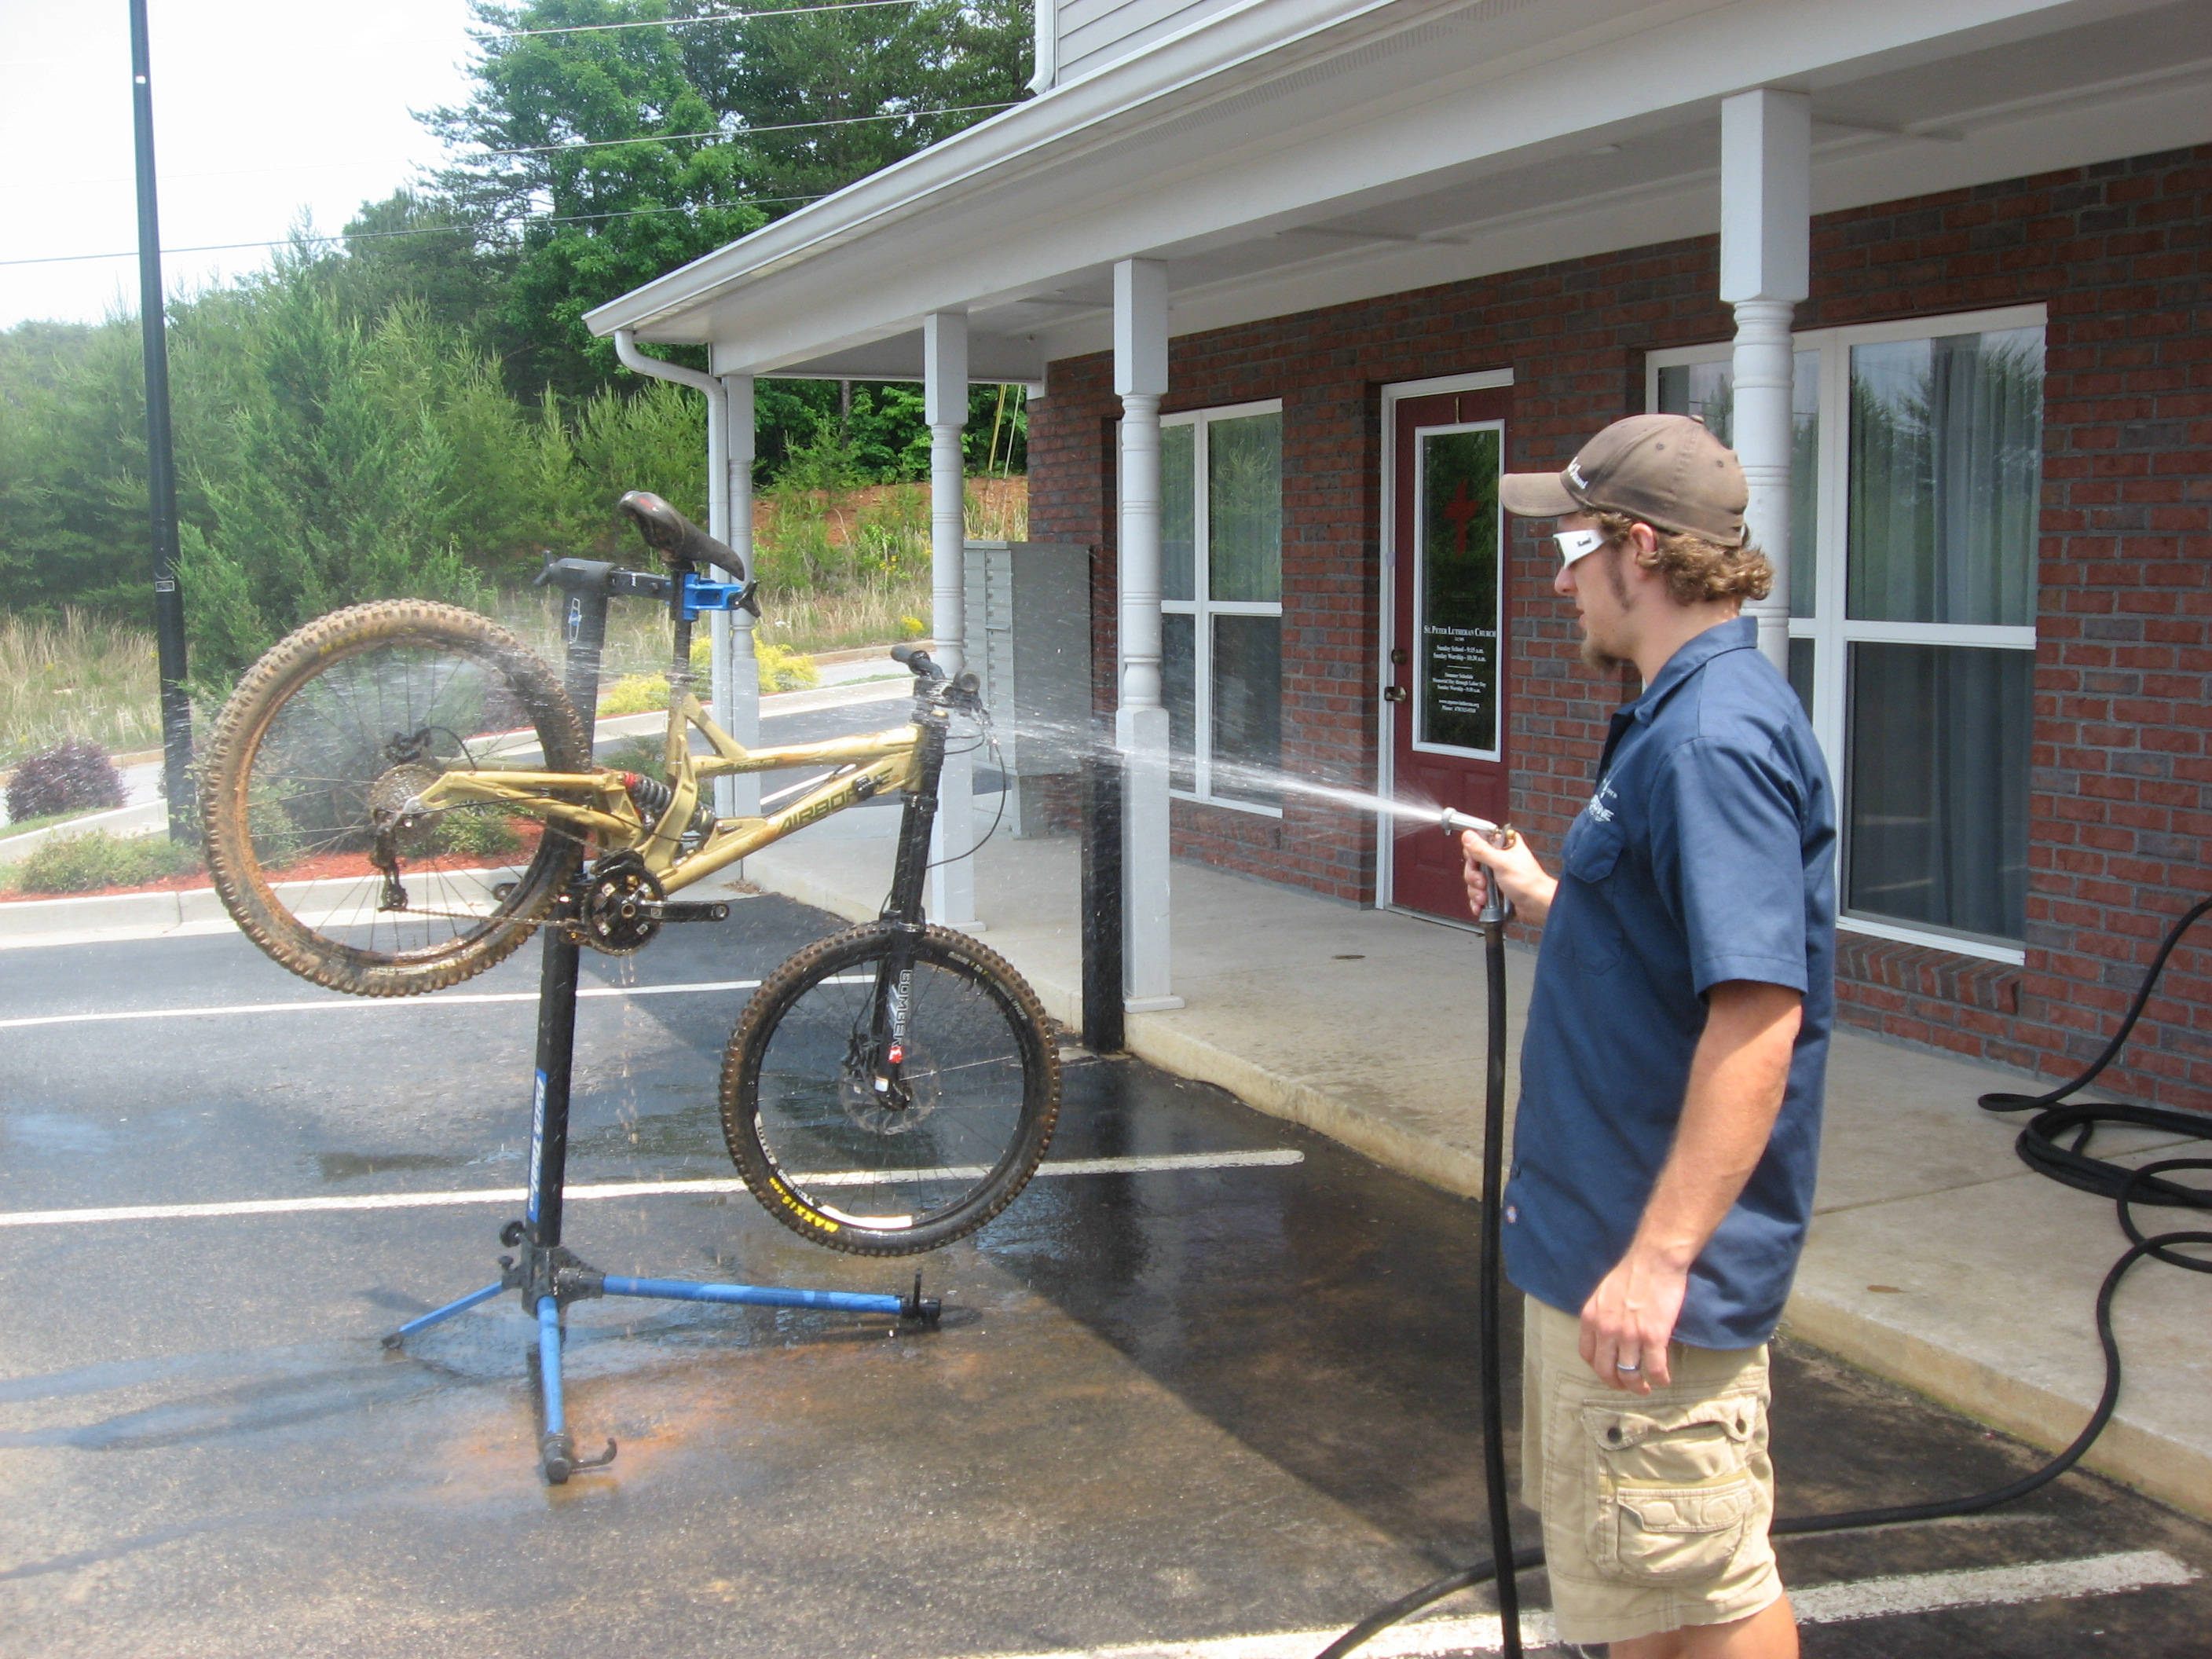 How To Clean Your Mountain Bike In 10 Easy Steps